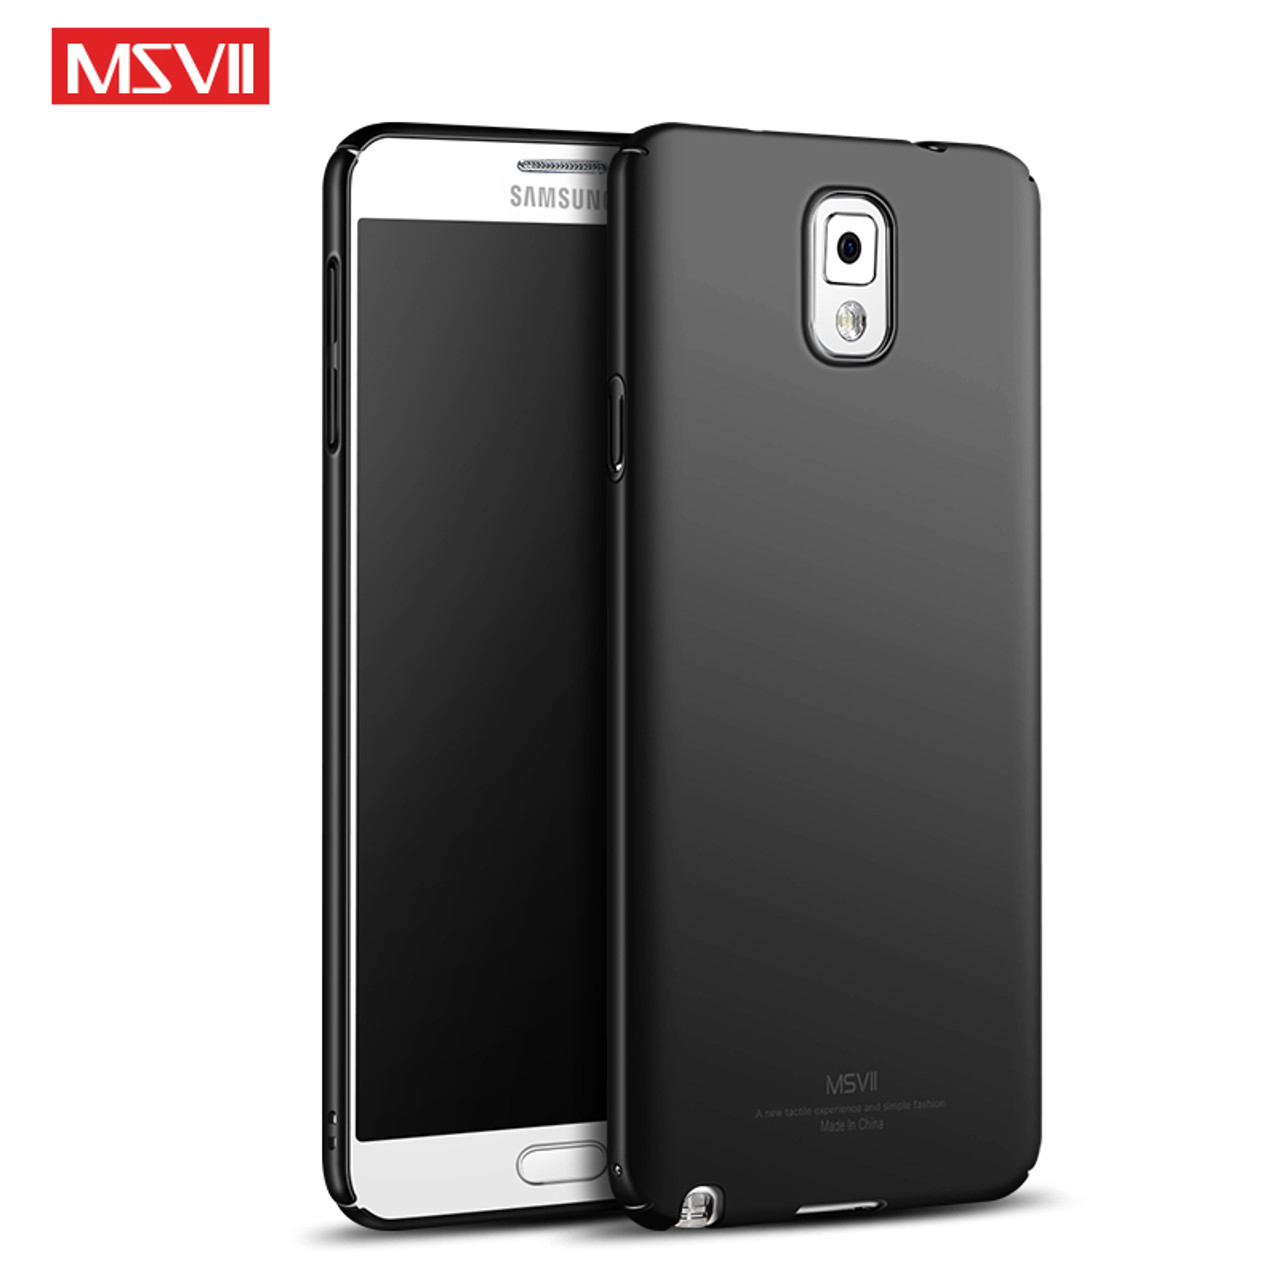 huge discount a8f28 0a3c0 Original MSVII For Samsung Galaxy Note 3 Case Hard Frosted PC Back Housing  Cover 360 Protection Phone Cases For Samsung Note3